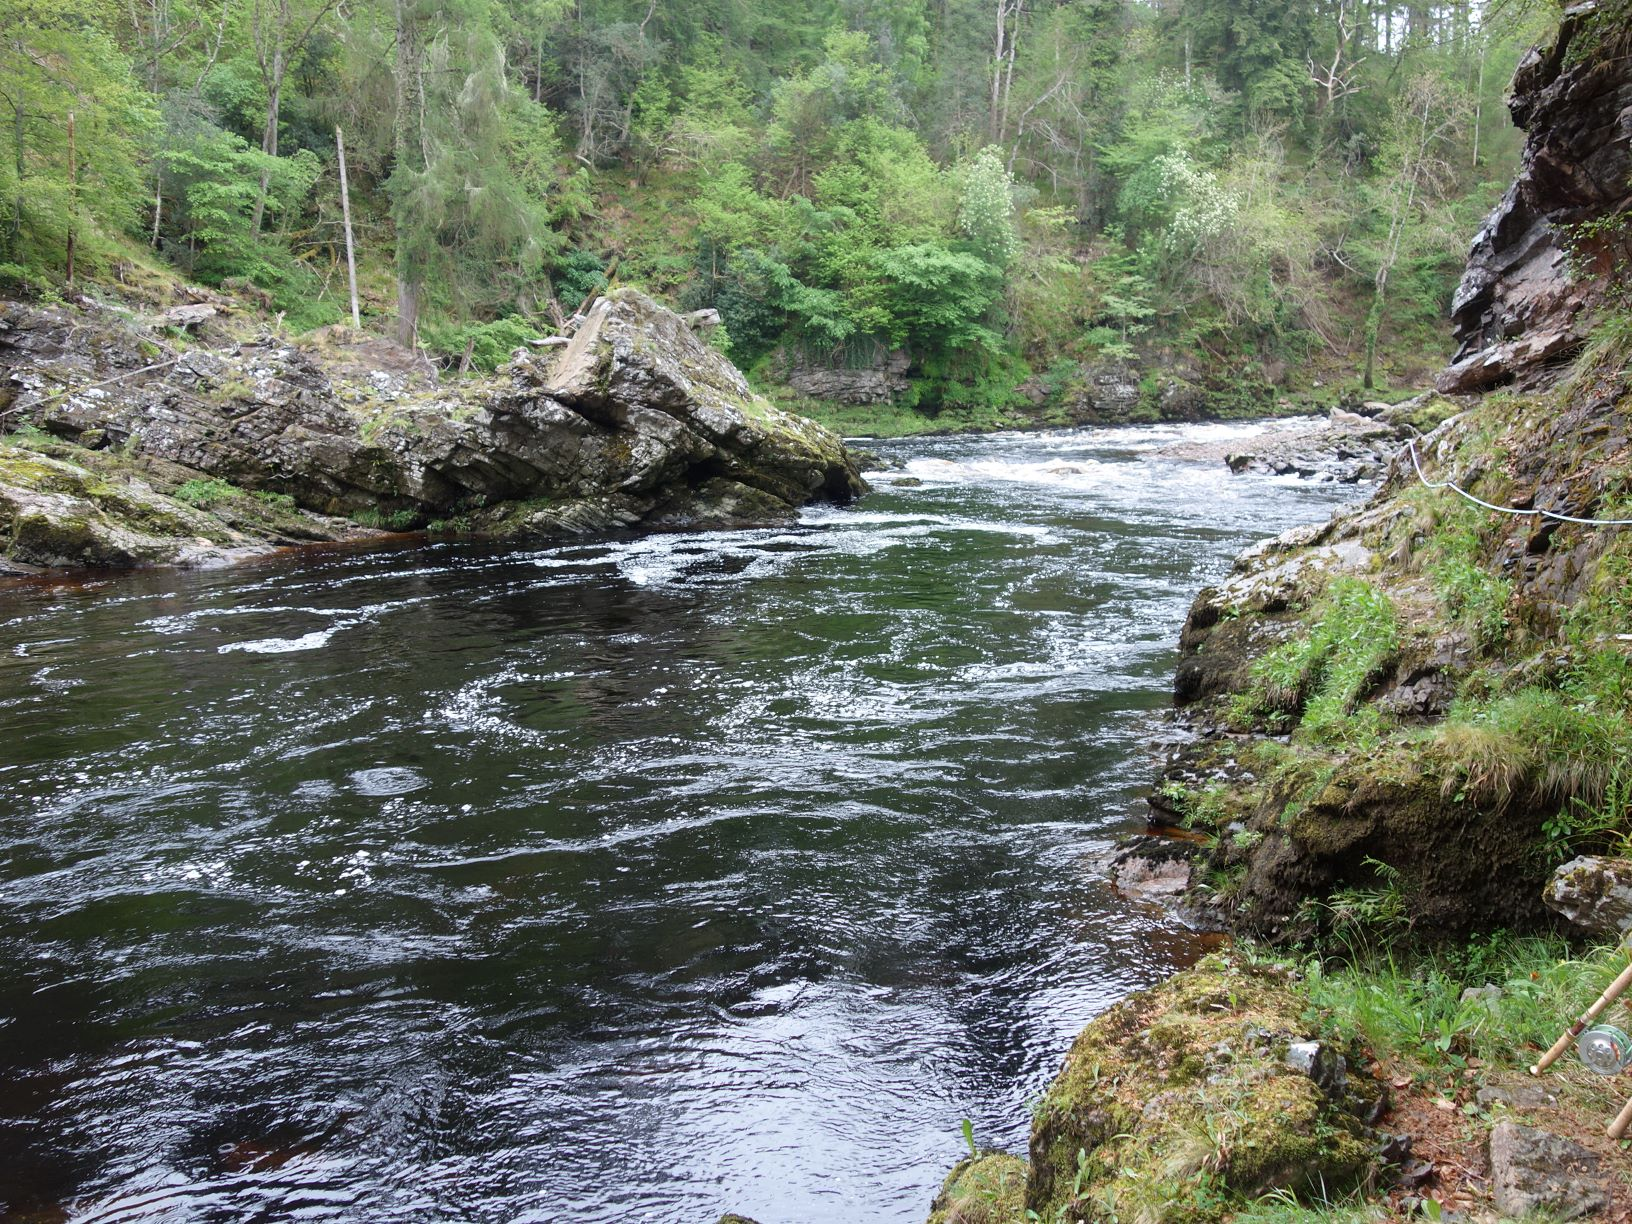 Looking up at Whirling Hole Pool, Upper Home Beat, Darnaway, River Findhorn